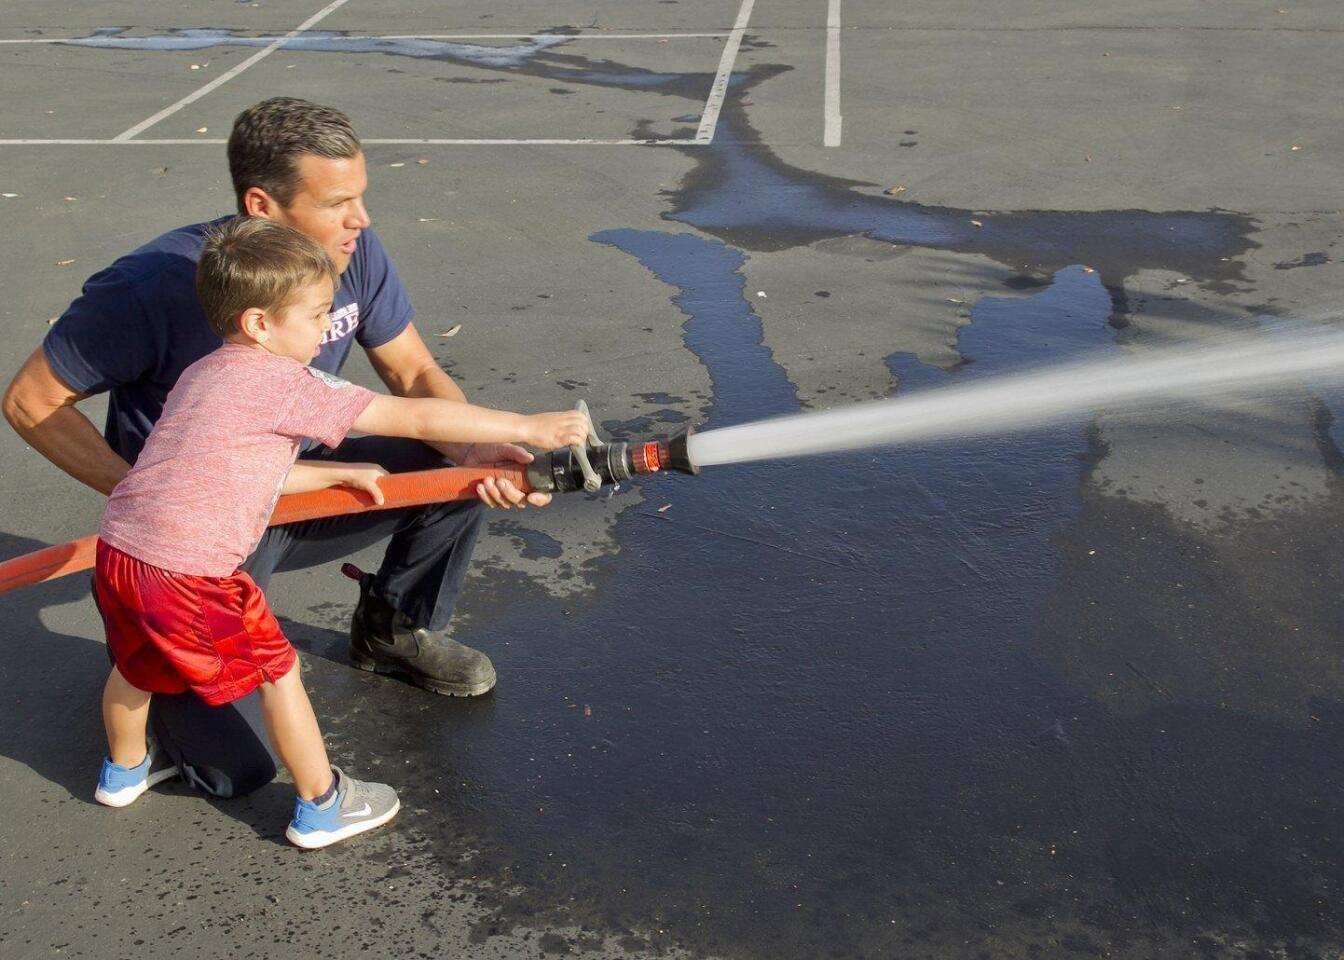 Firefighter Tim Wood helps Liam Clapper use the fire hose